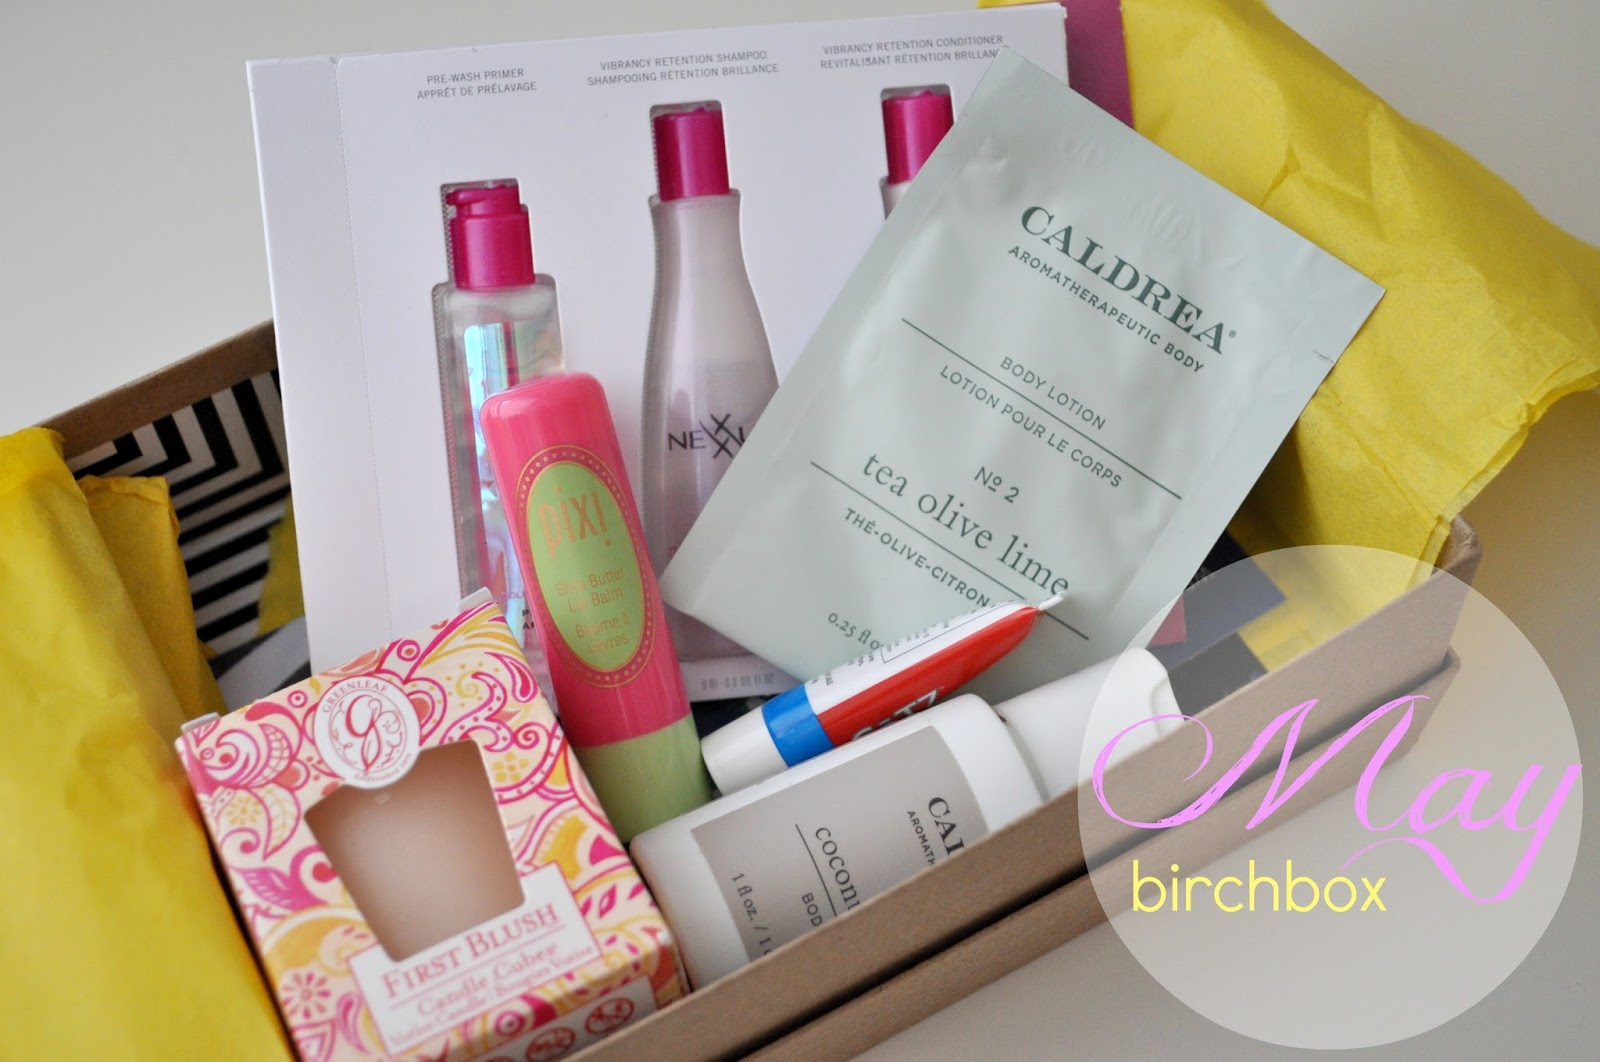 how to get points on birchbox